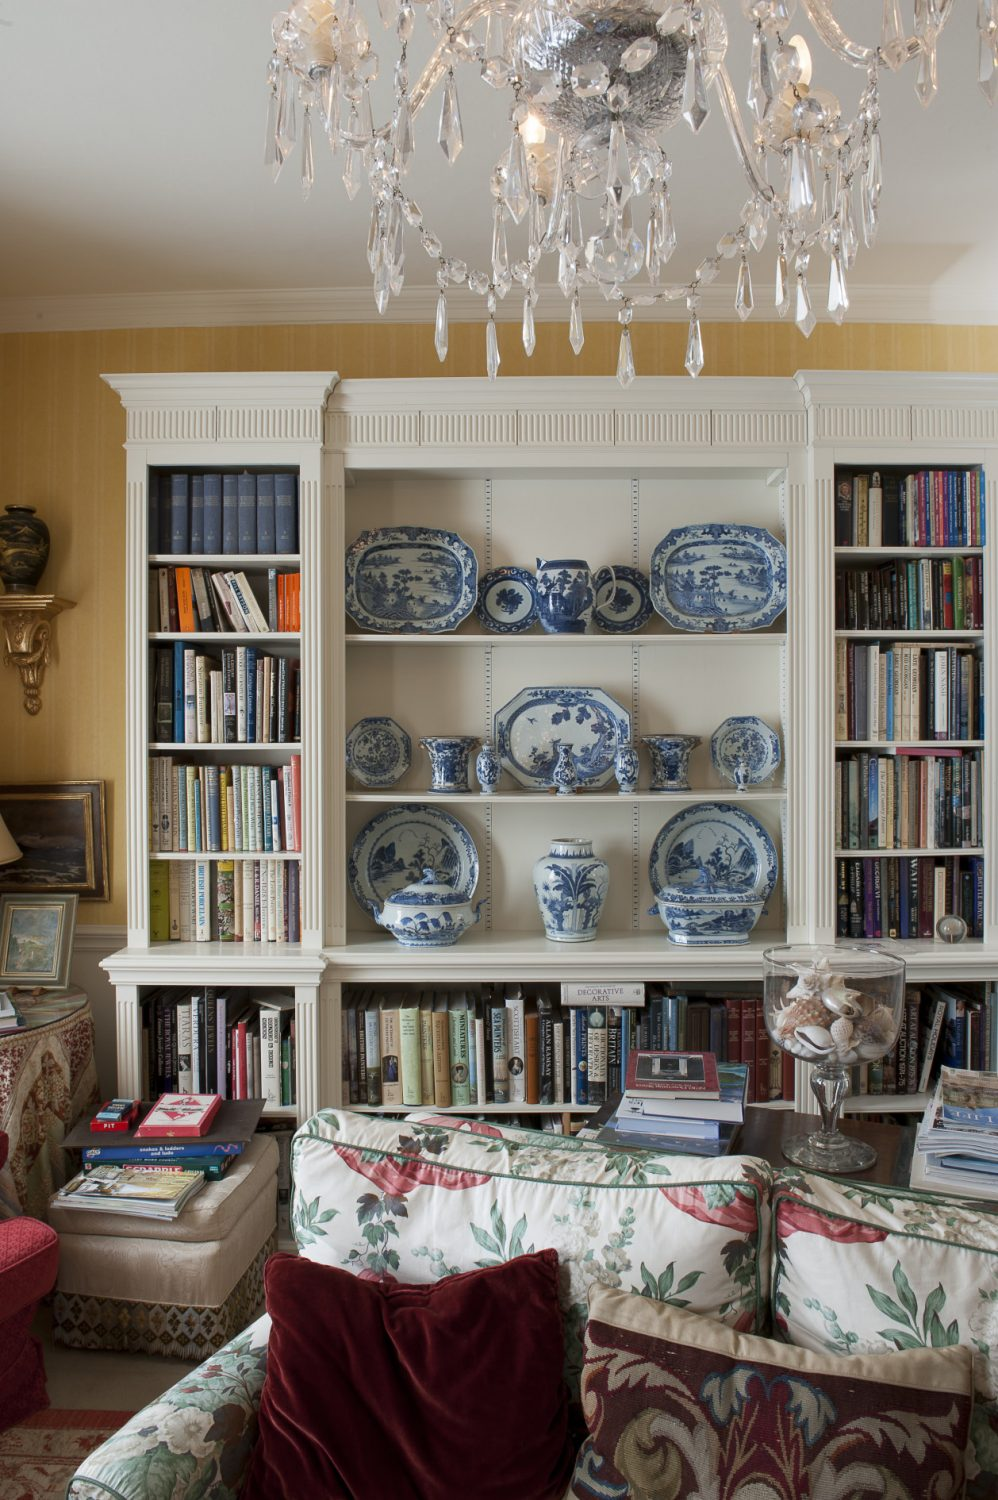 There are plenty of books and periodicals for guests to enjoy